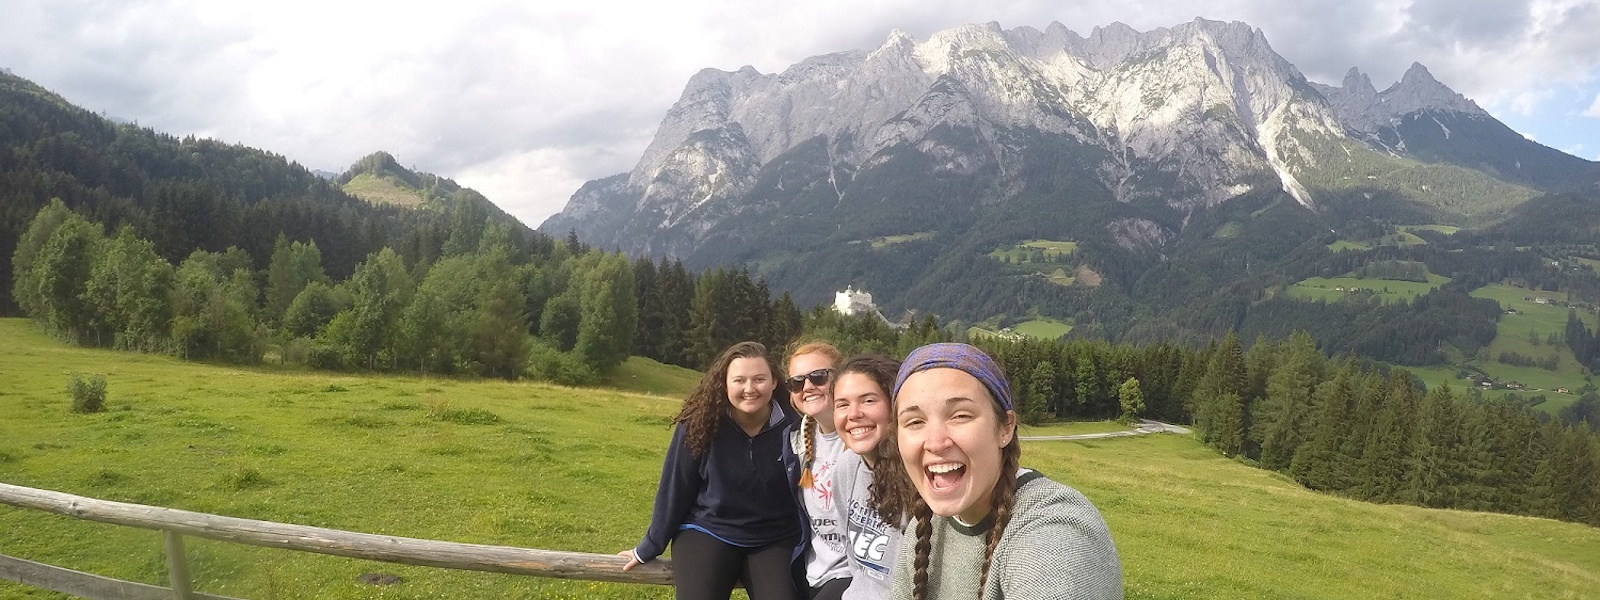 Mount St. Mary's students on a study abroad trip to Salzburg, Austria.